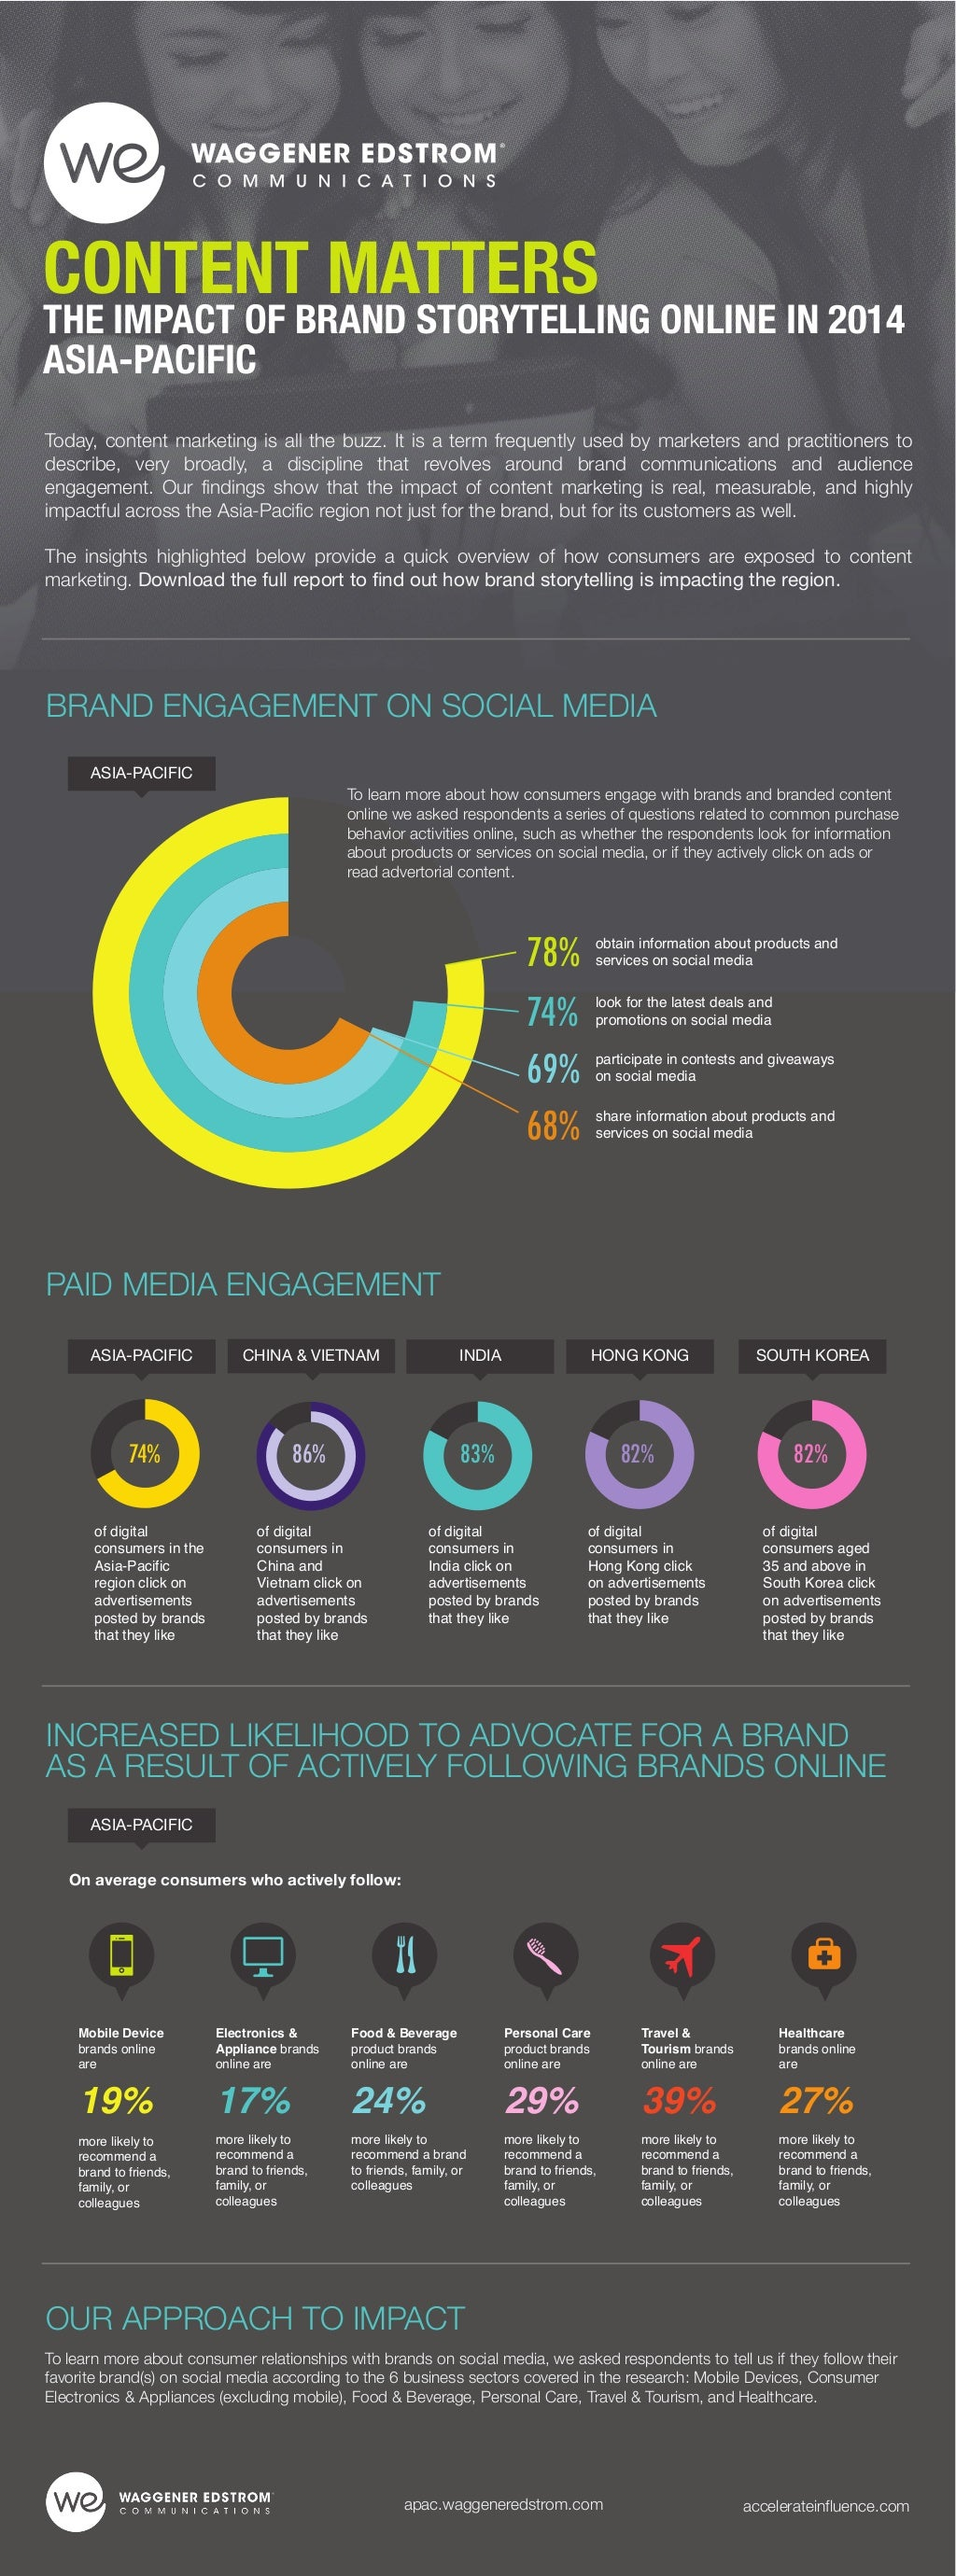 Infographic Brand Engagement - CONTENT MATTERS ASIA-PACIFIC WAGGENER EDSTROM The Impact of Content 2014